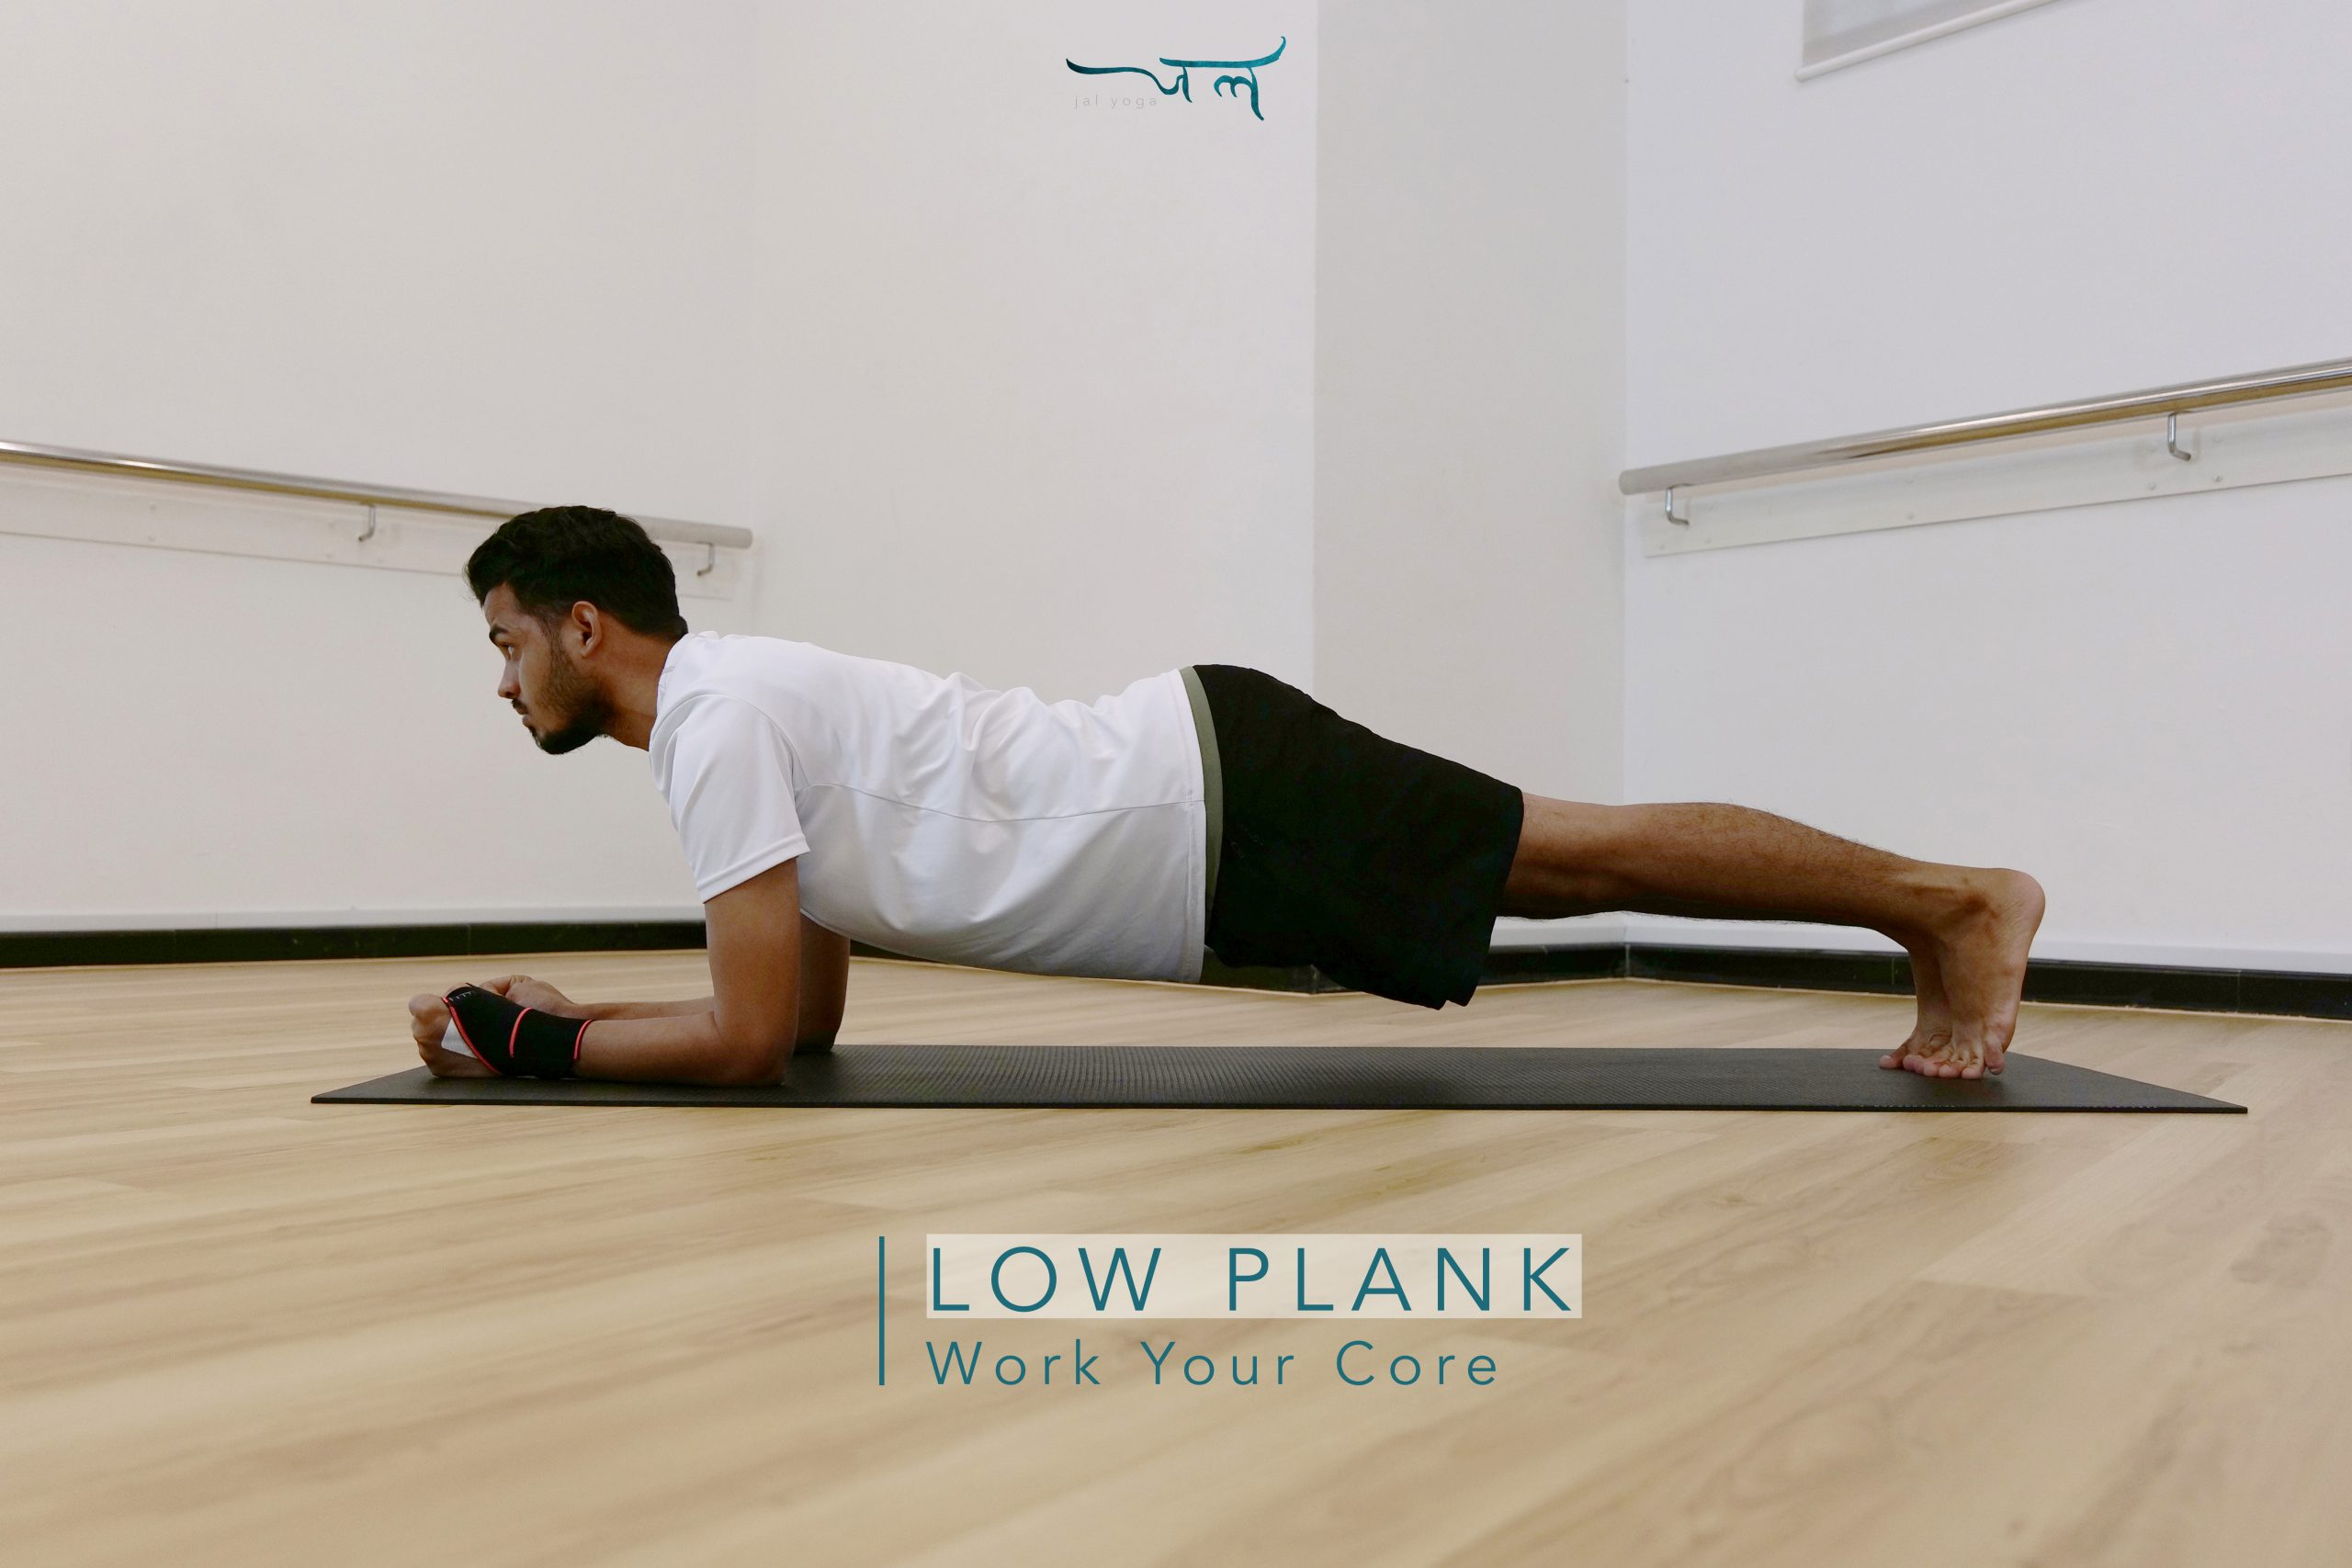 Low Plank | Core Workout at Home To Flatten Your Belly